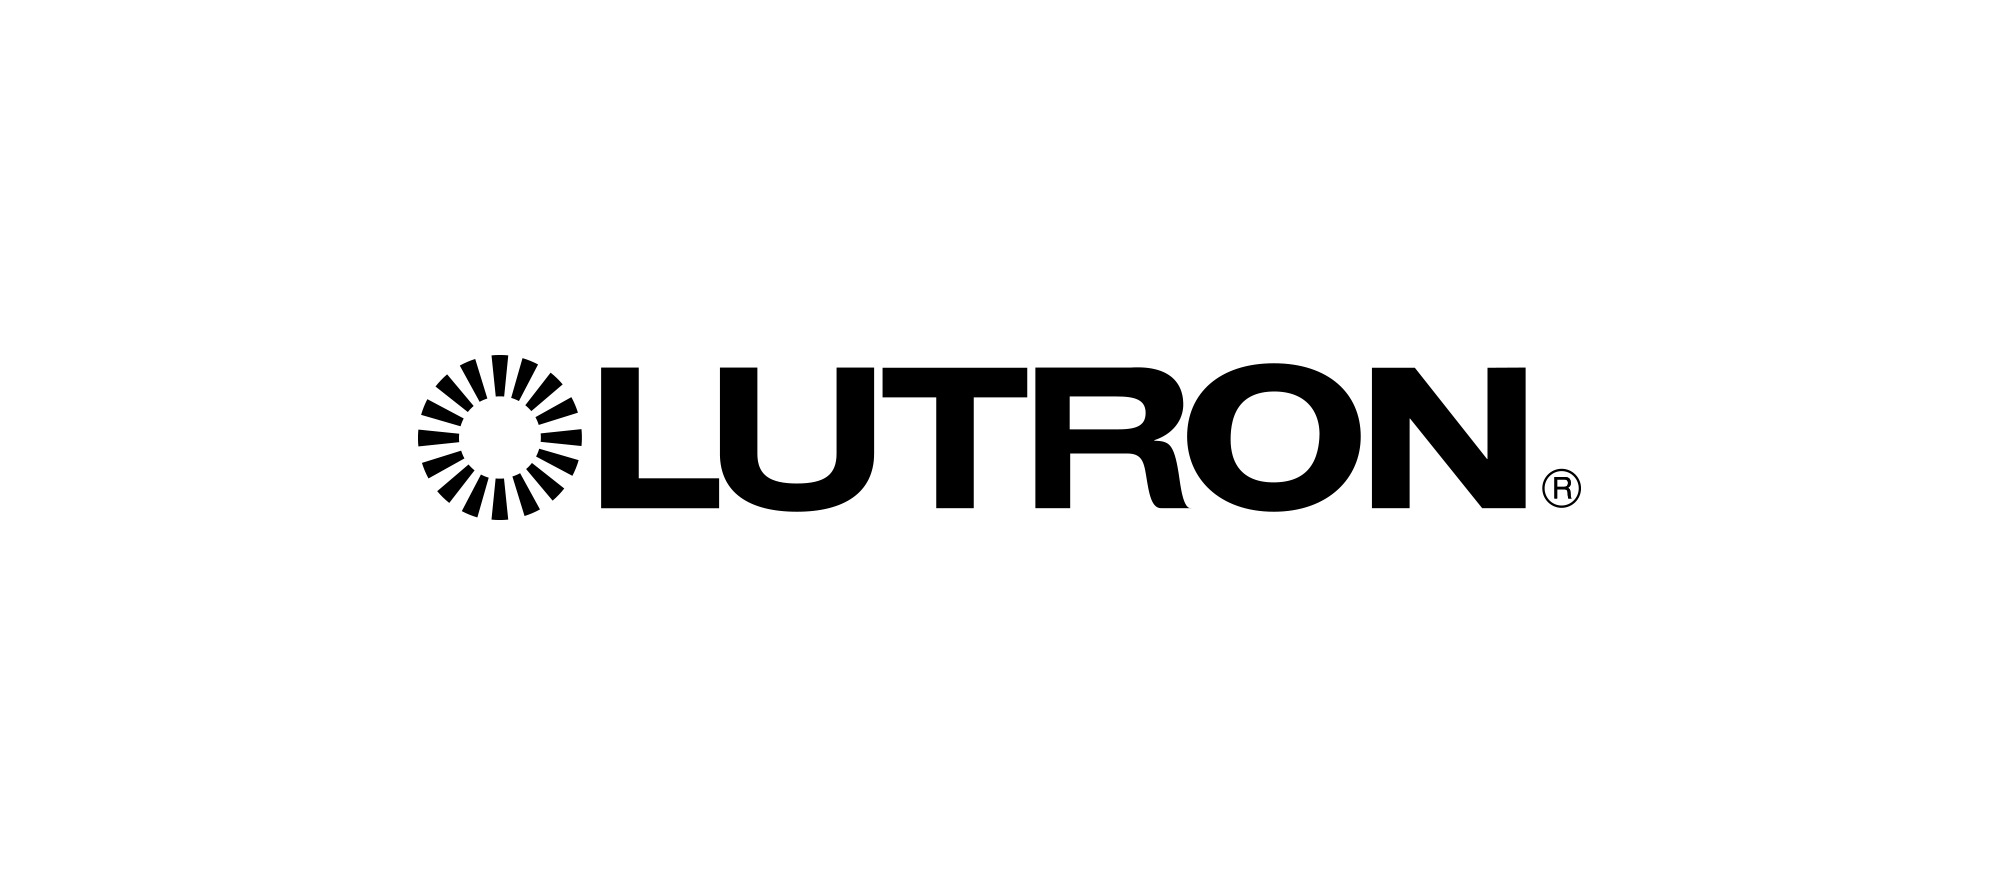 LUTRON - Lutron is the leader in the lighting control industry and offers a wide selection of energy saving dimmers and lighting control solutions.